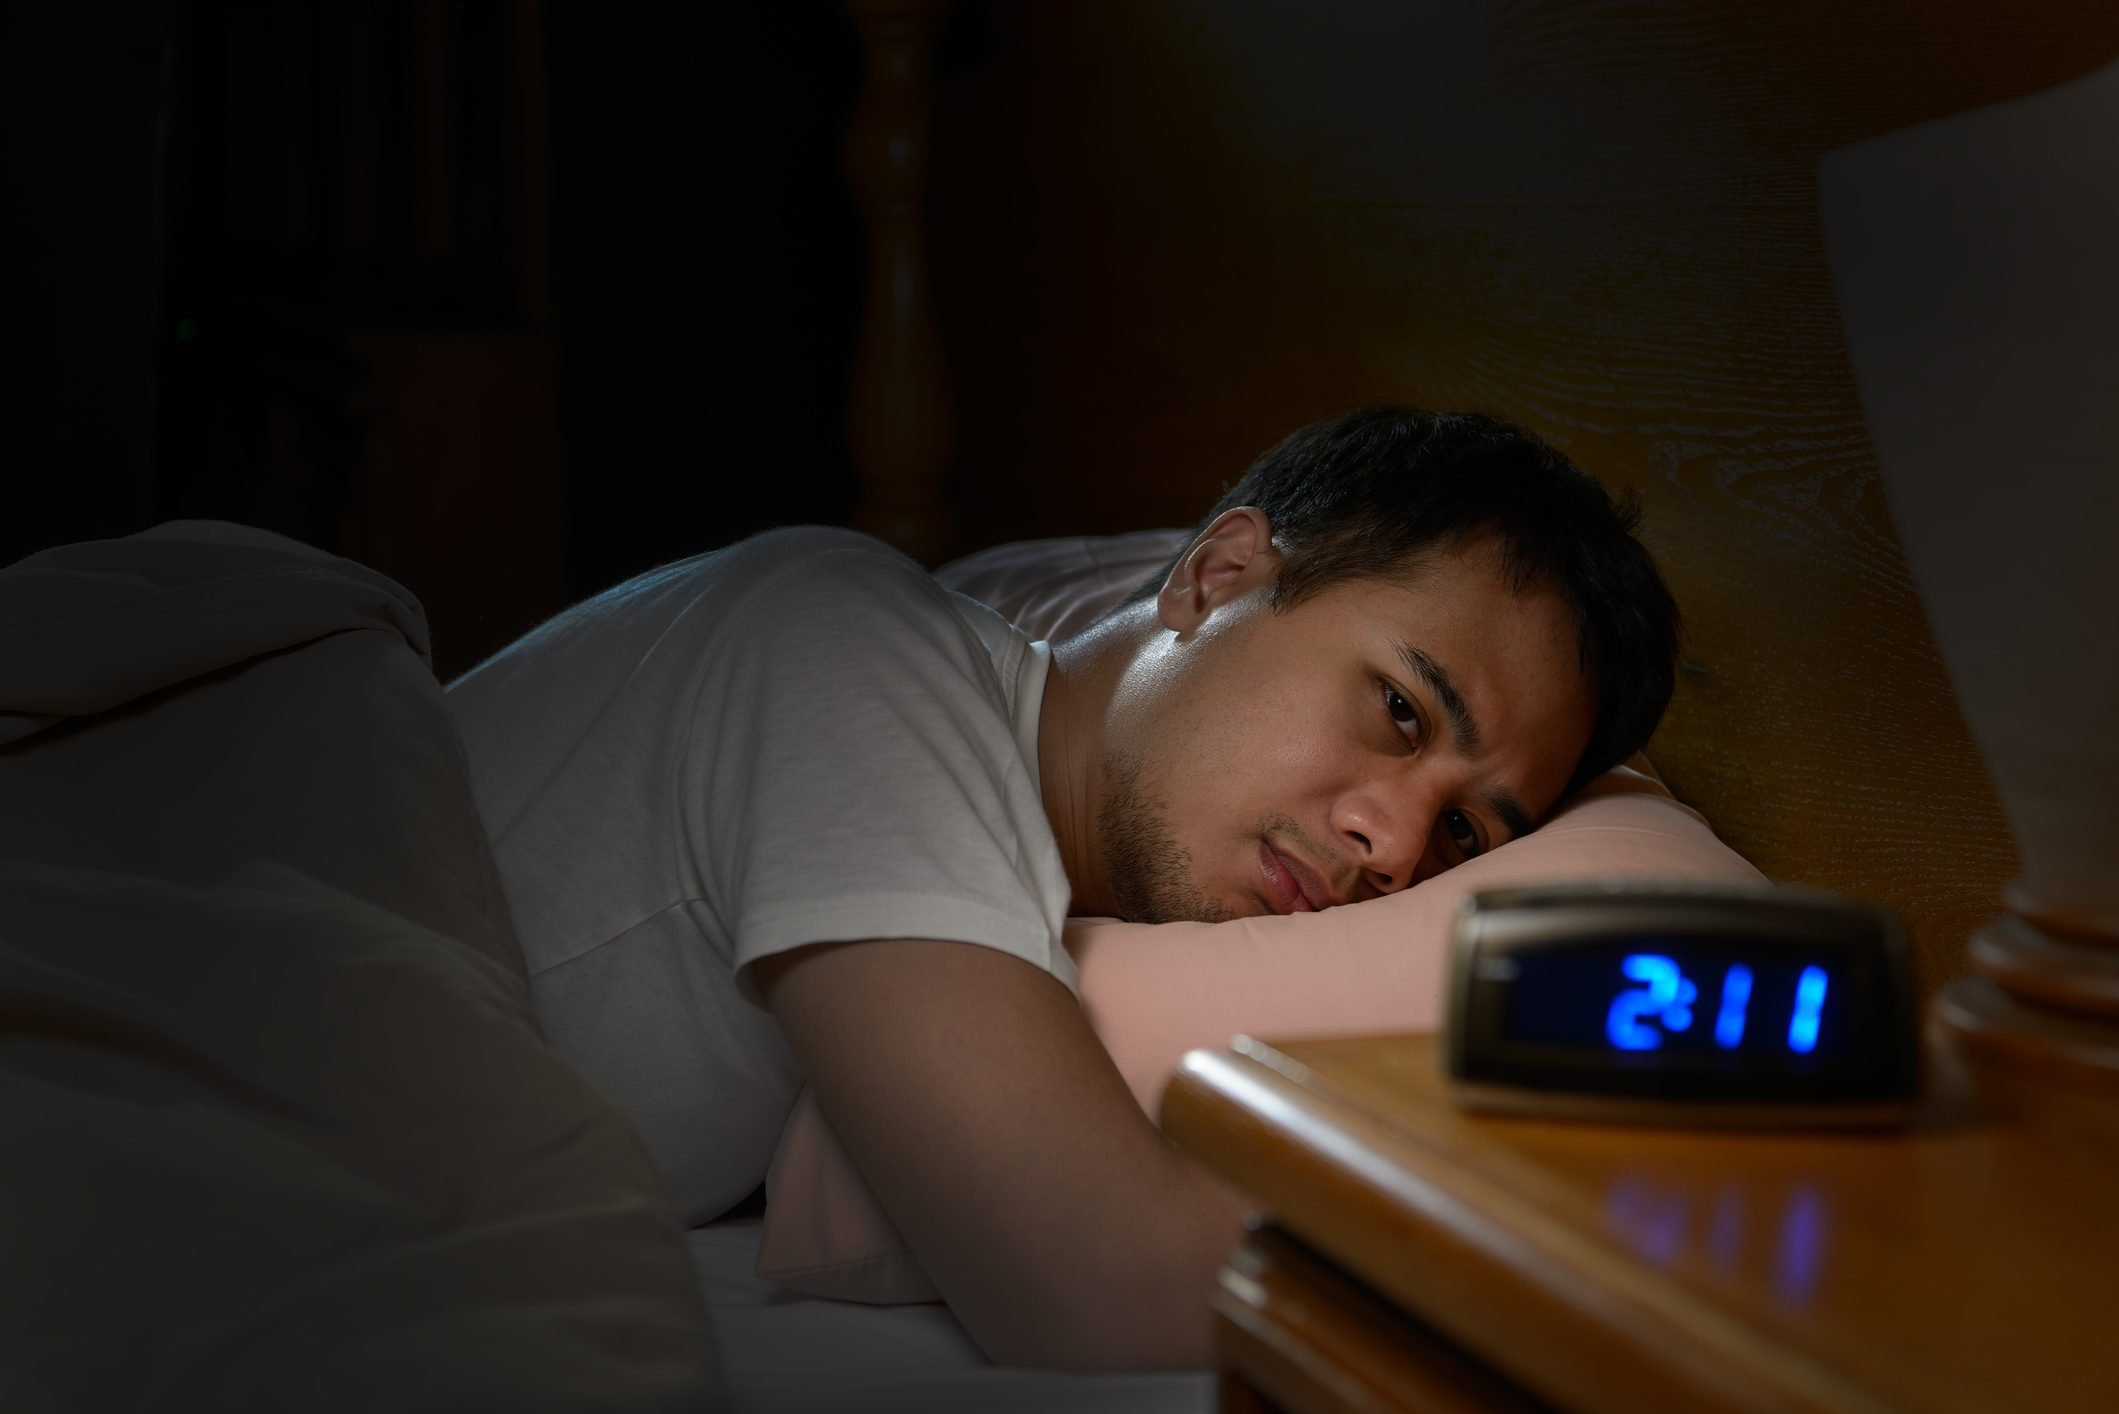 man unable to sleep at night